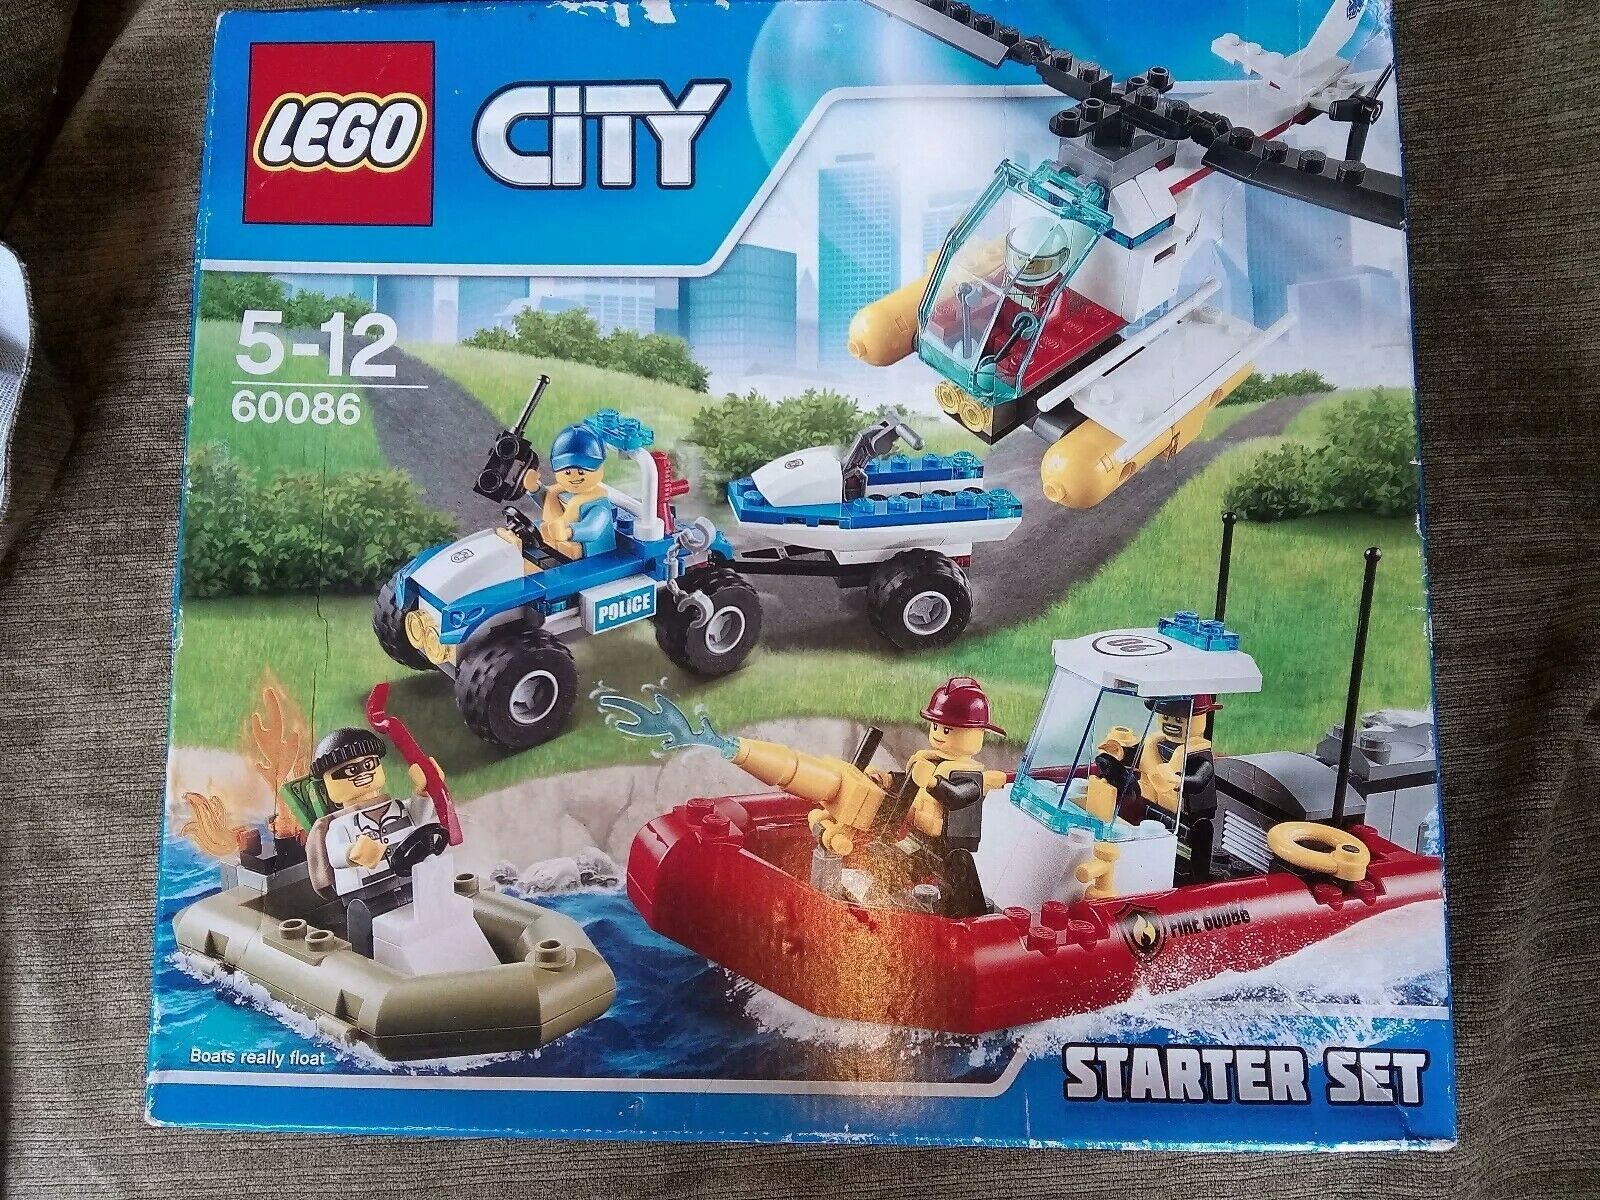 LEGO City Starter Set 60086 Fire Police Helicopter BNIB New Sealed - Retired